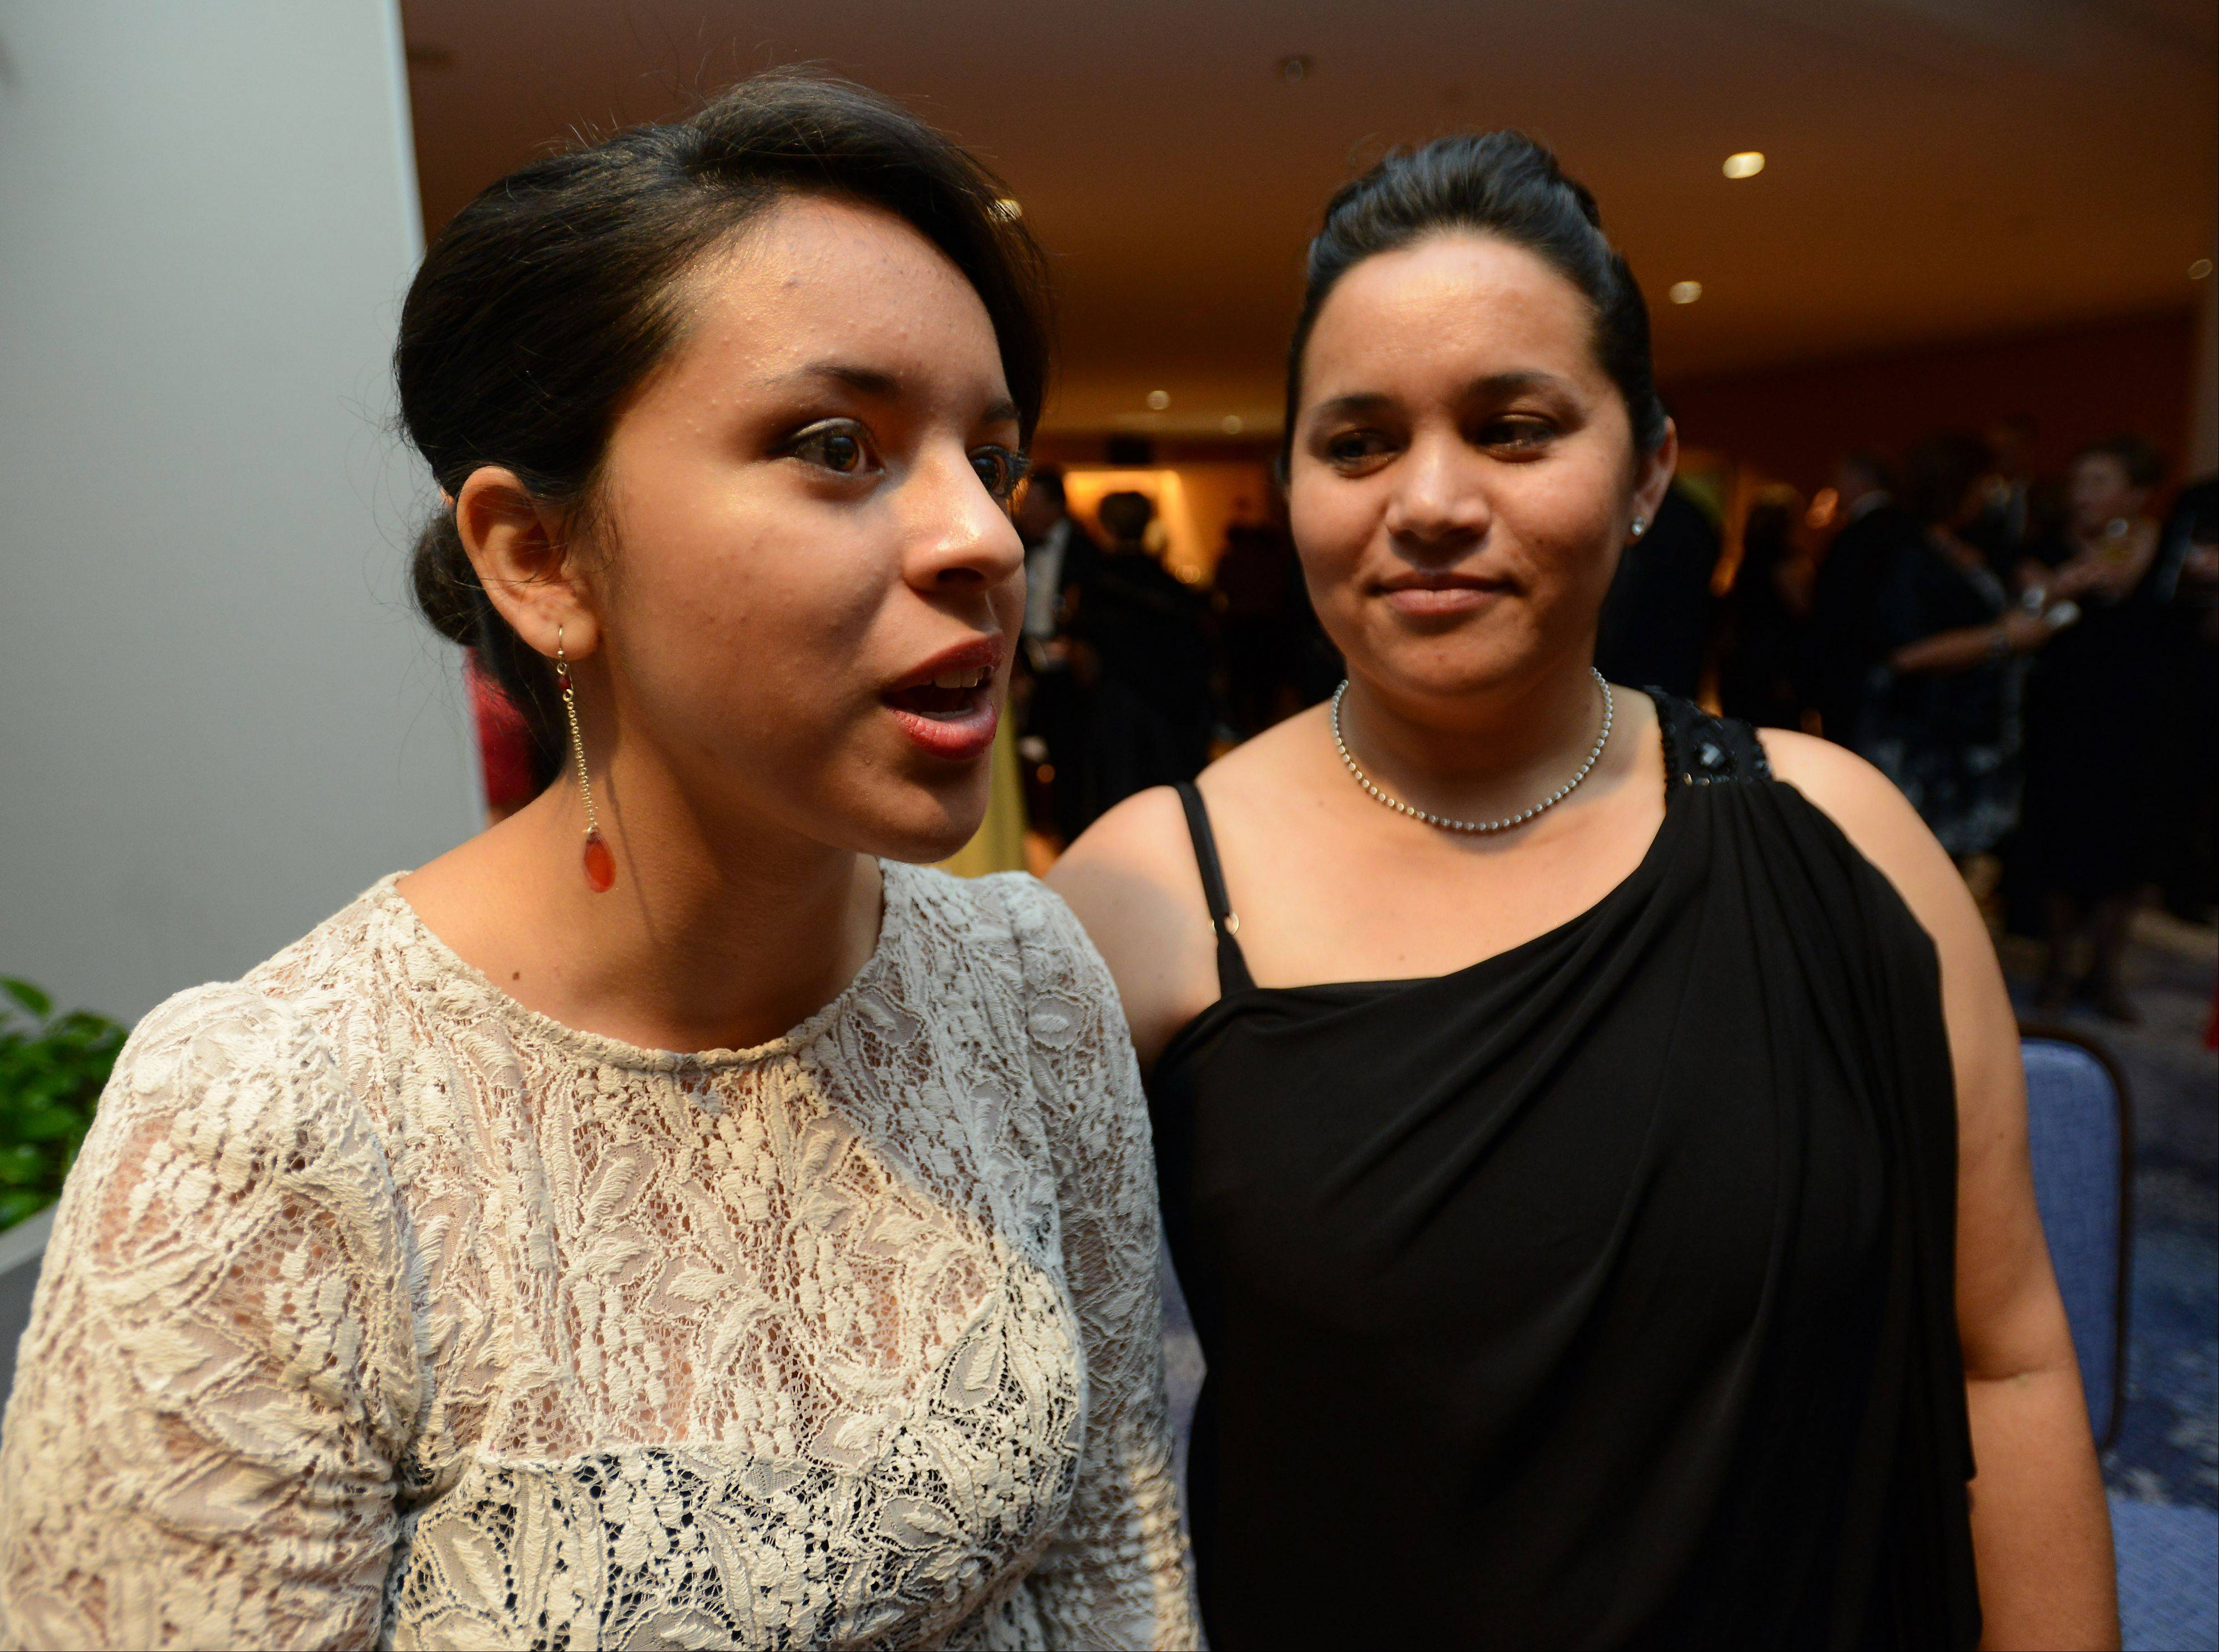 Mark Welsh/mwelsh@dailyherald.comElisa Galvan, with her mother, Maricela Alva, discusses the speech she is about to give at The President's Ball gala fundraiser.